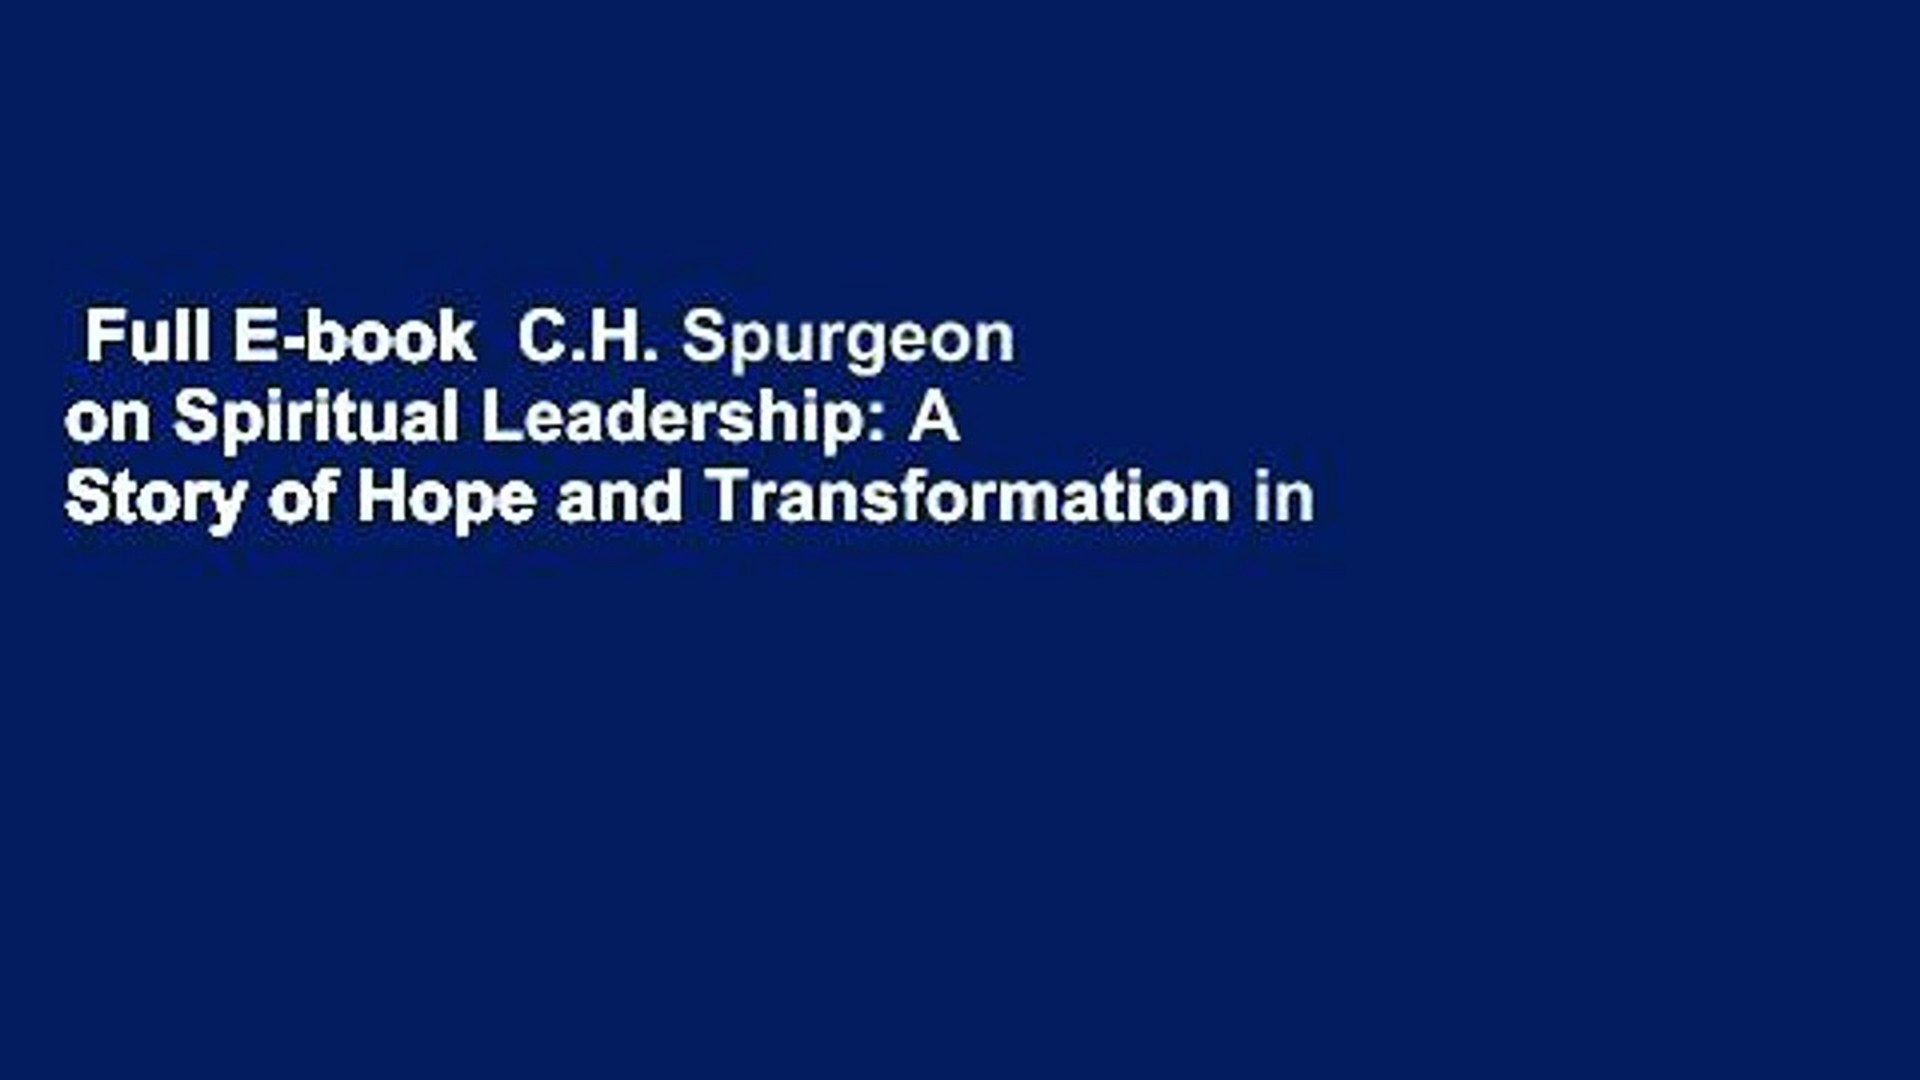 Full E-book  C.H. Spurgeon on Spiritual Leadership: A Story of Hope and Transformation in